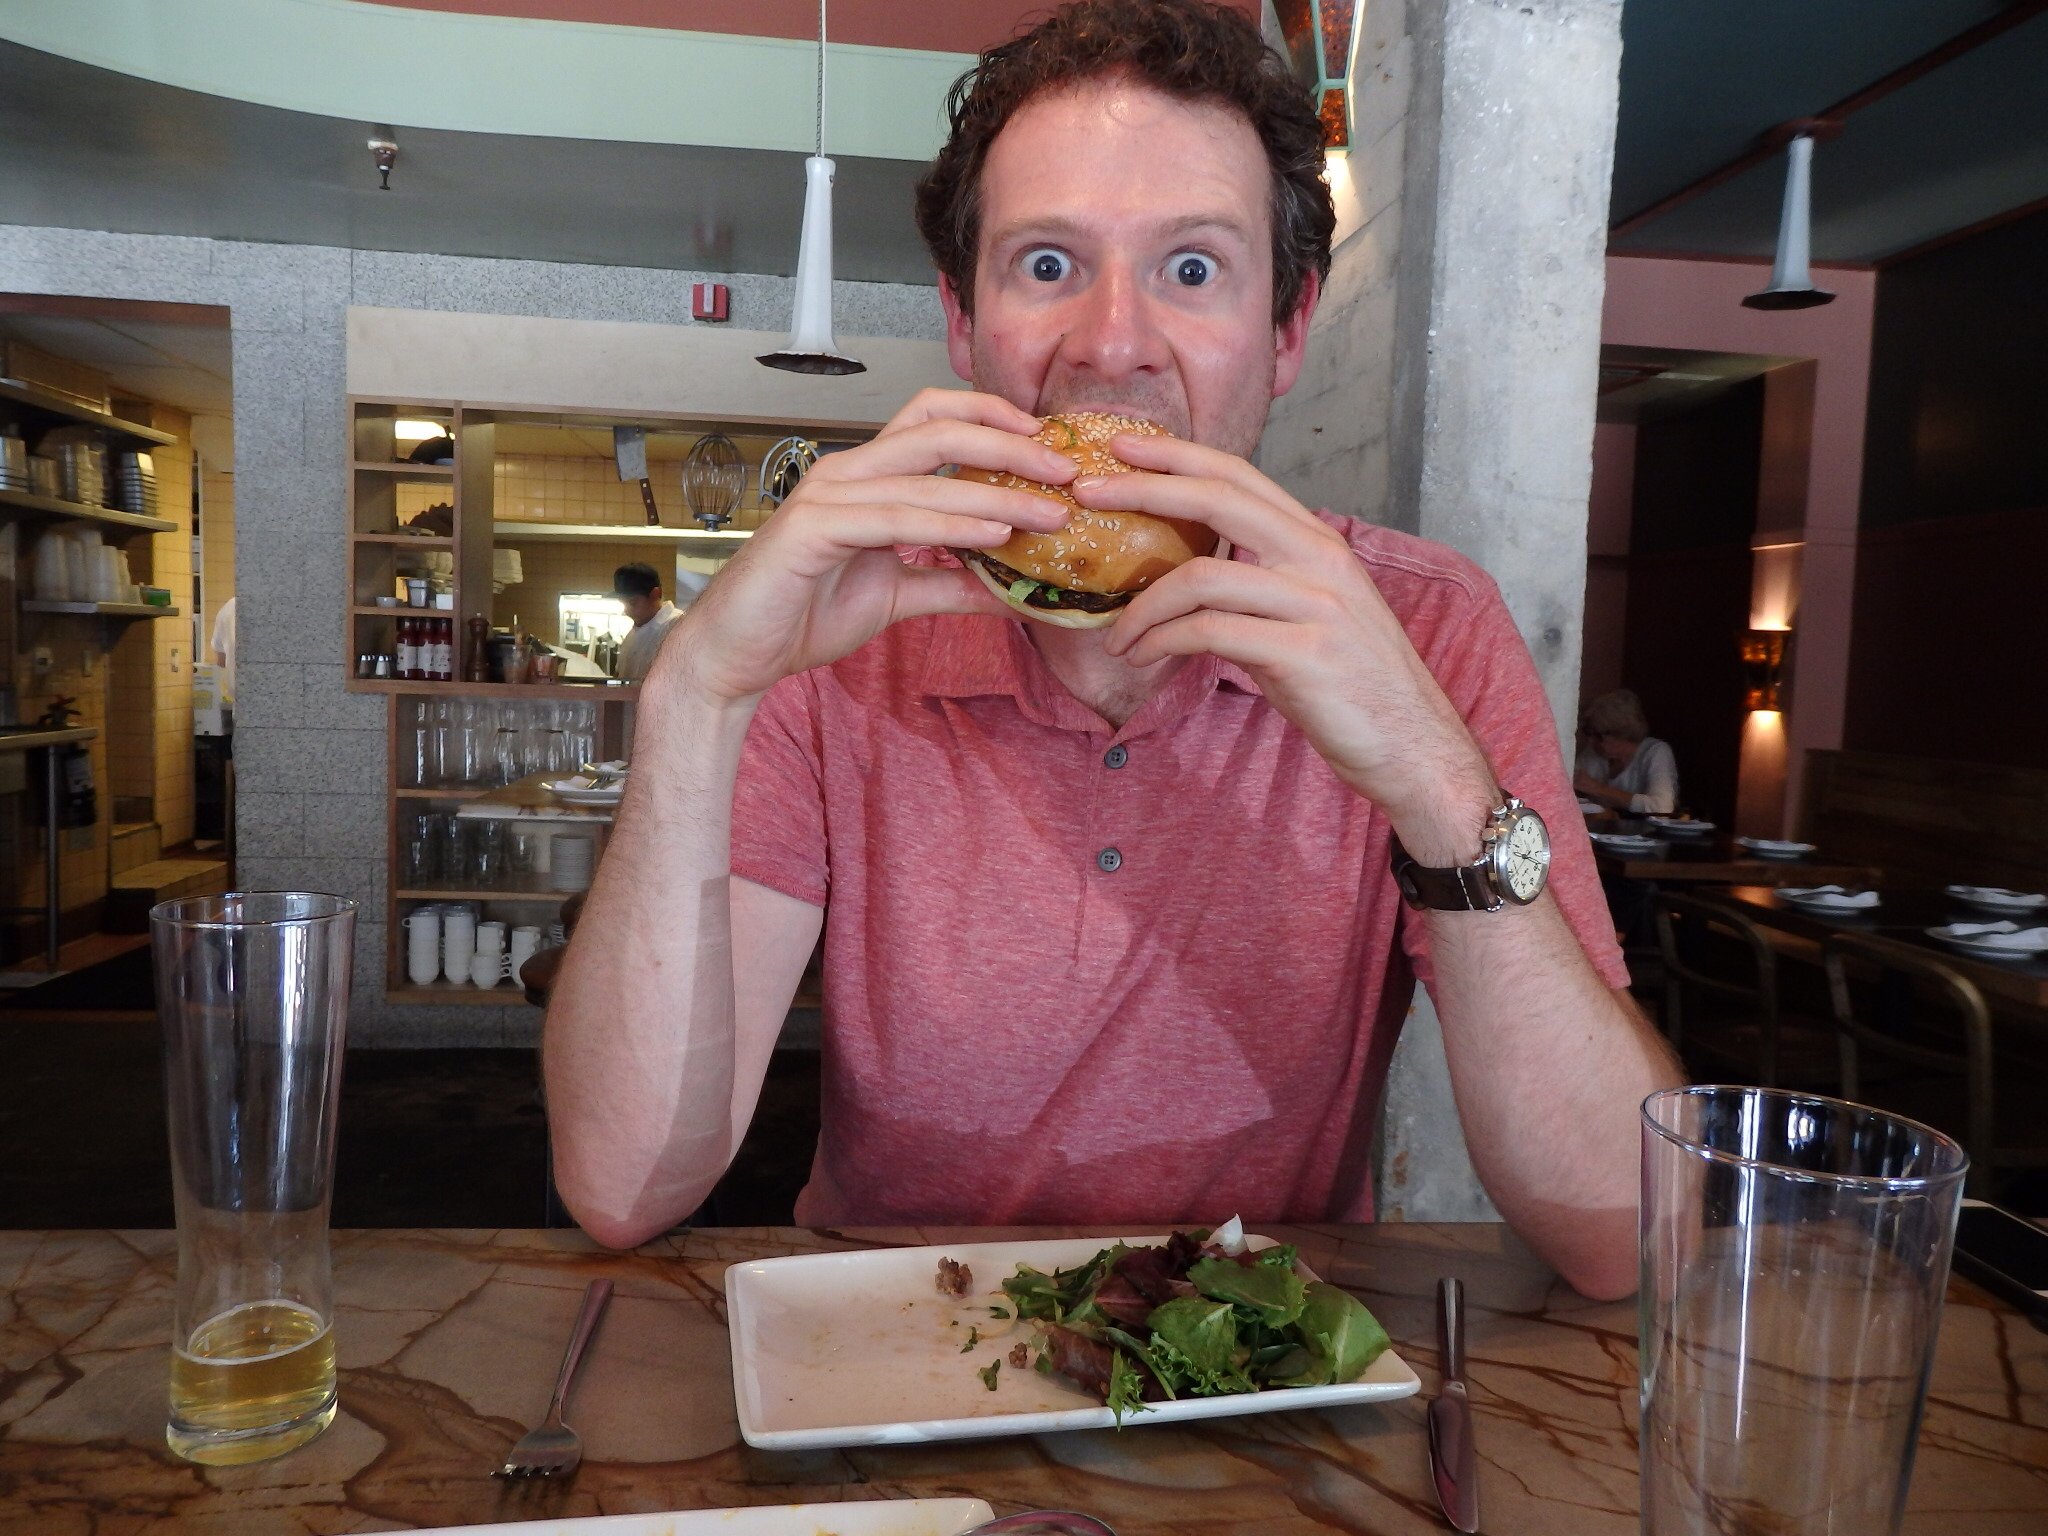 Olly gets his mouth around an Americana - just as Kevin insists. No cutlery!